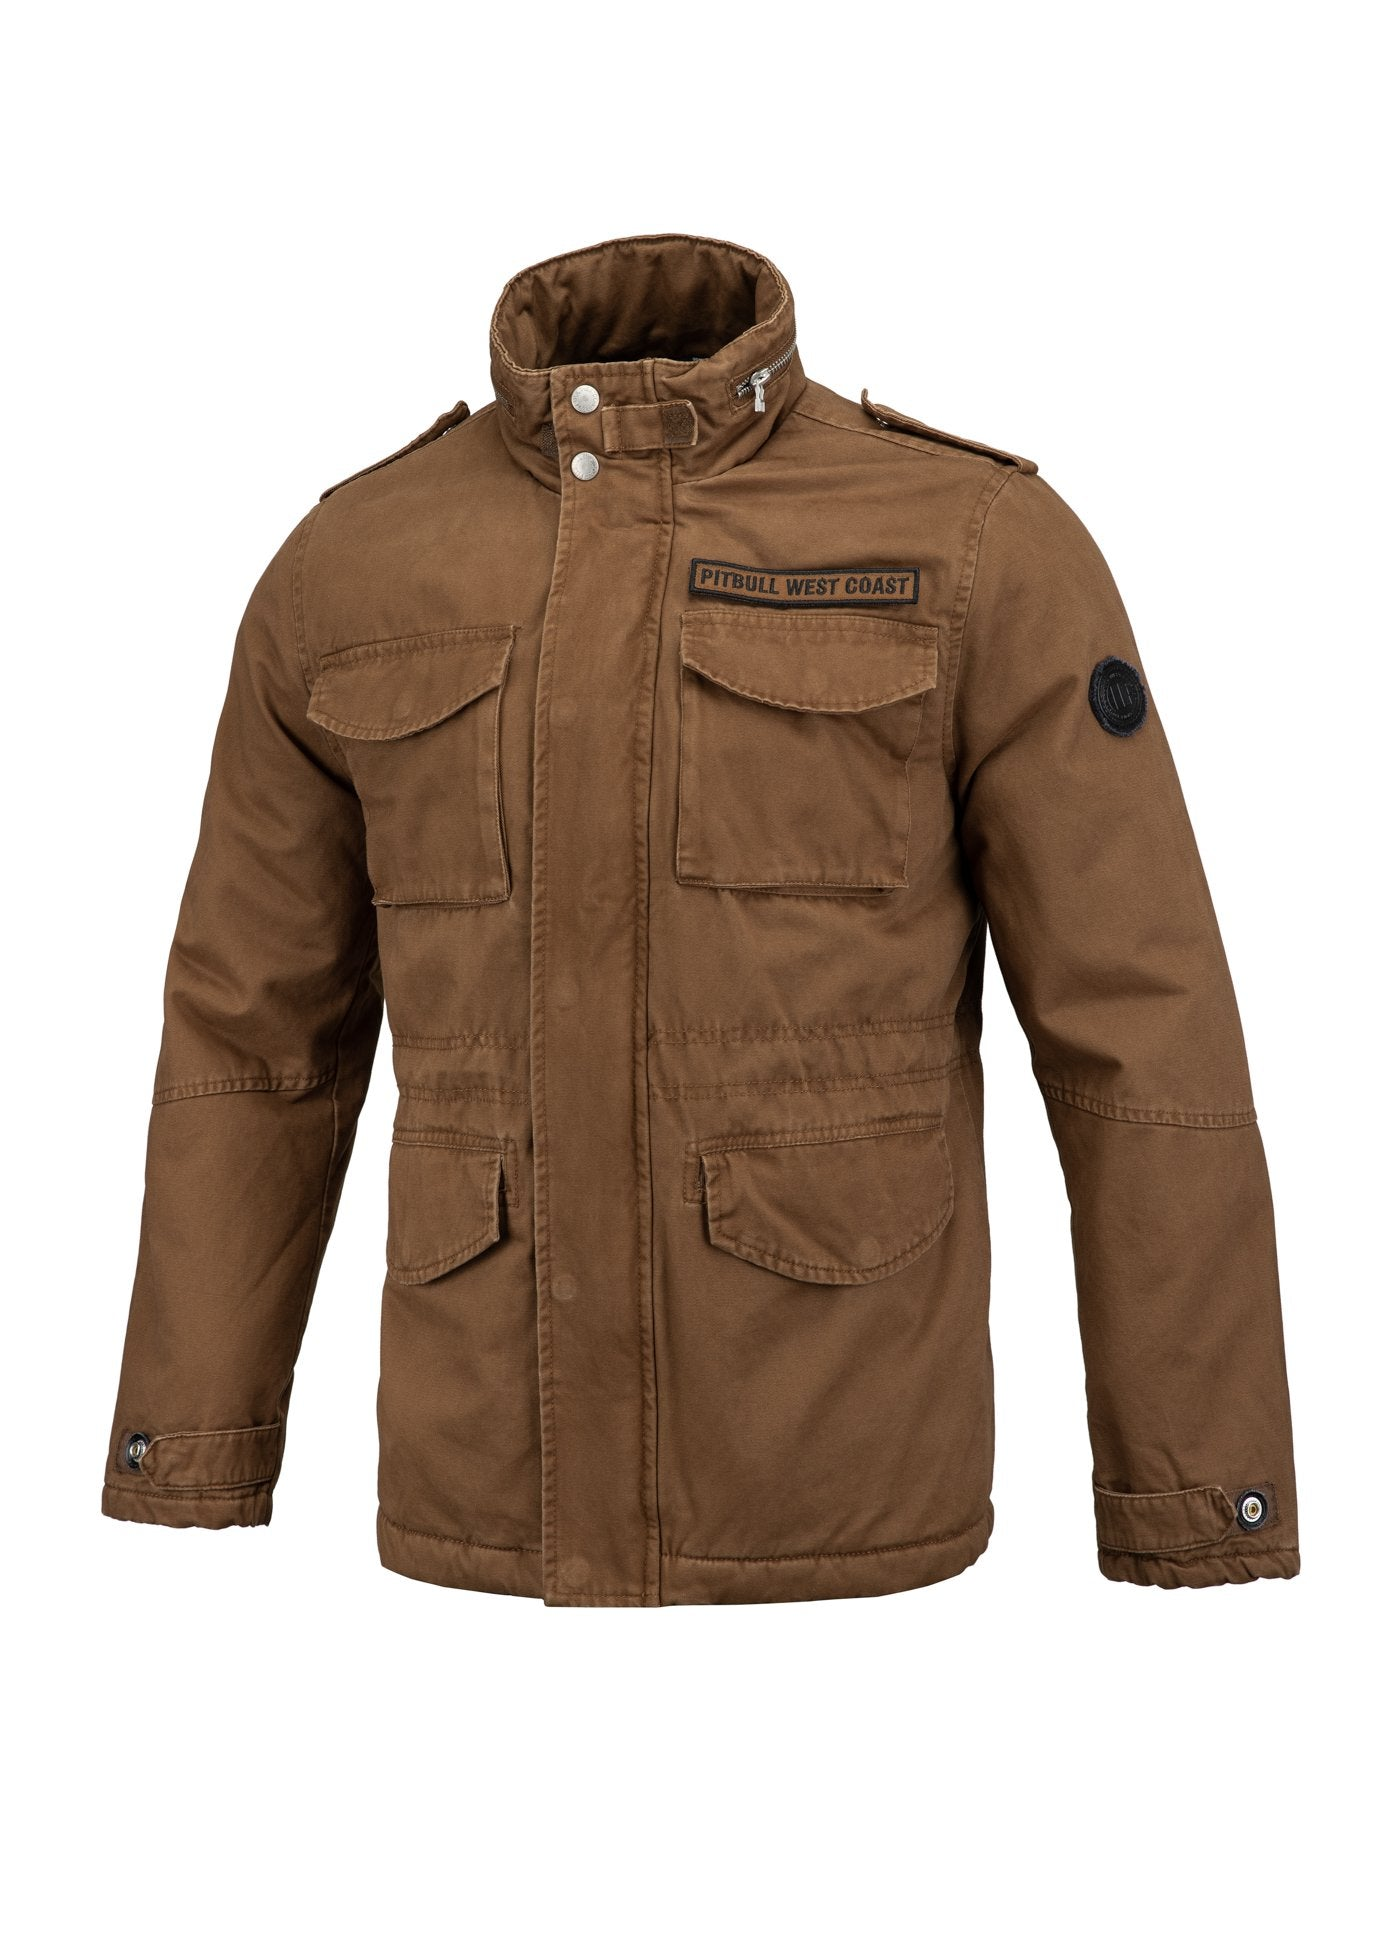 WINTER JACKET MONTEREY BROWN - pitbullwestcoast